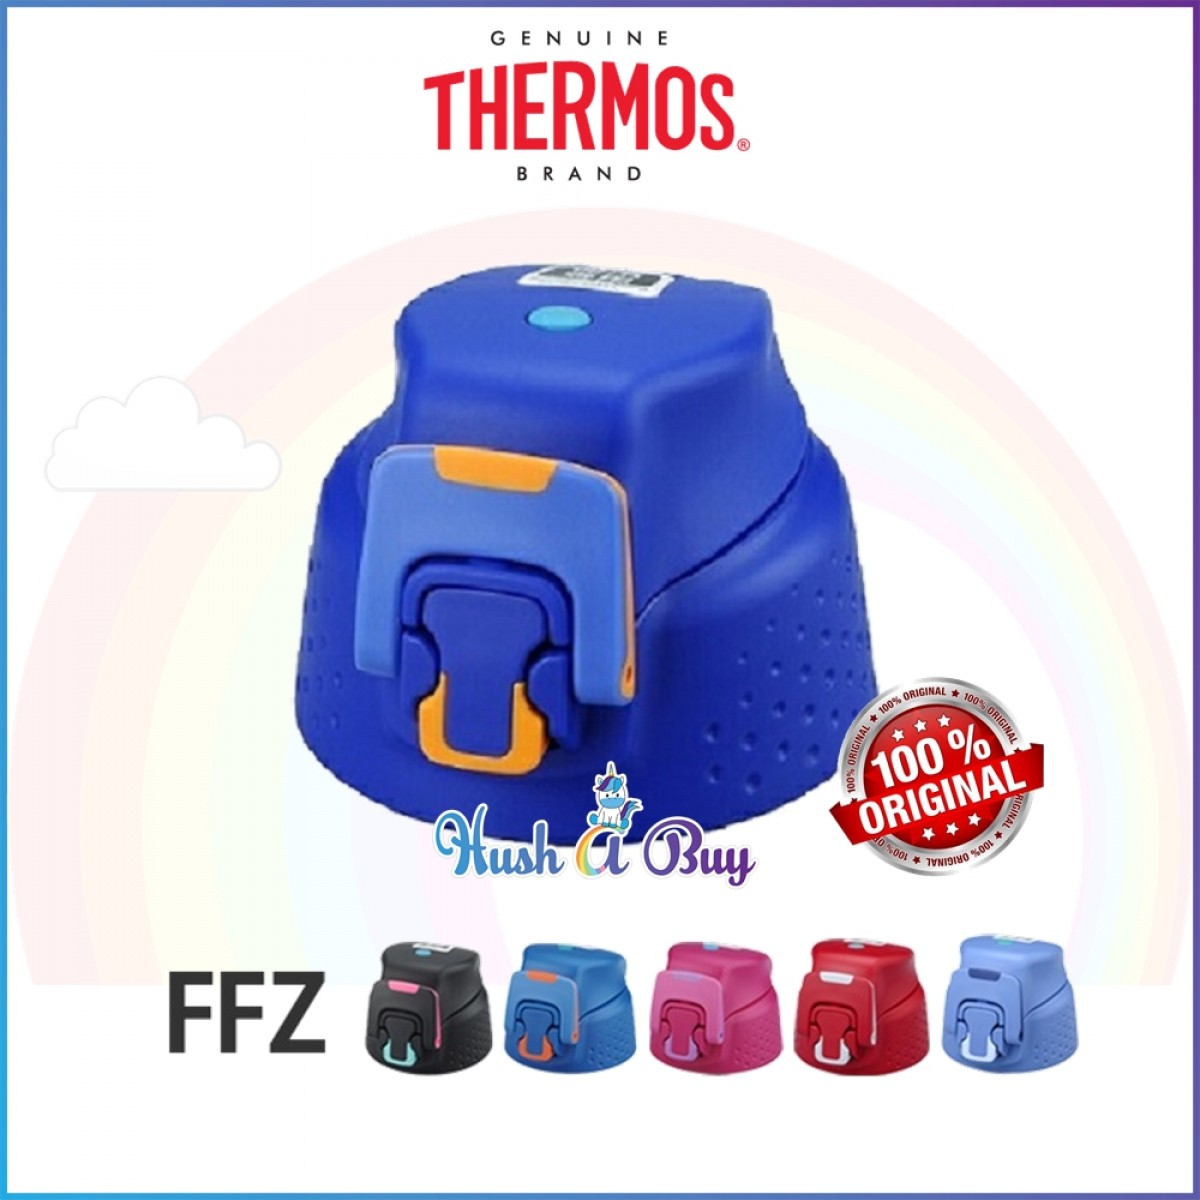 Thermos Spare Part - Thermos FFZ Series Head / Stopper / Lid ( For FFZ-1501F and FFZ-1500F)